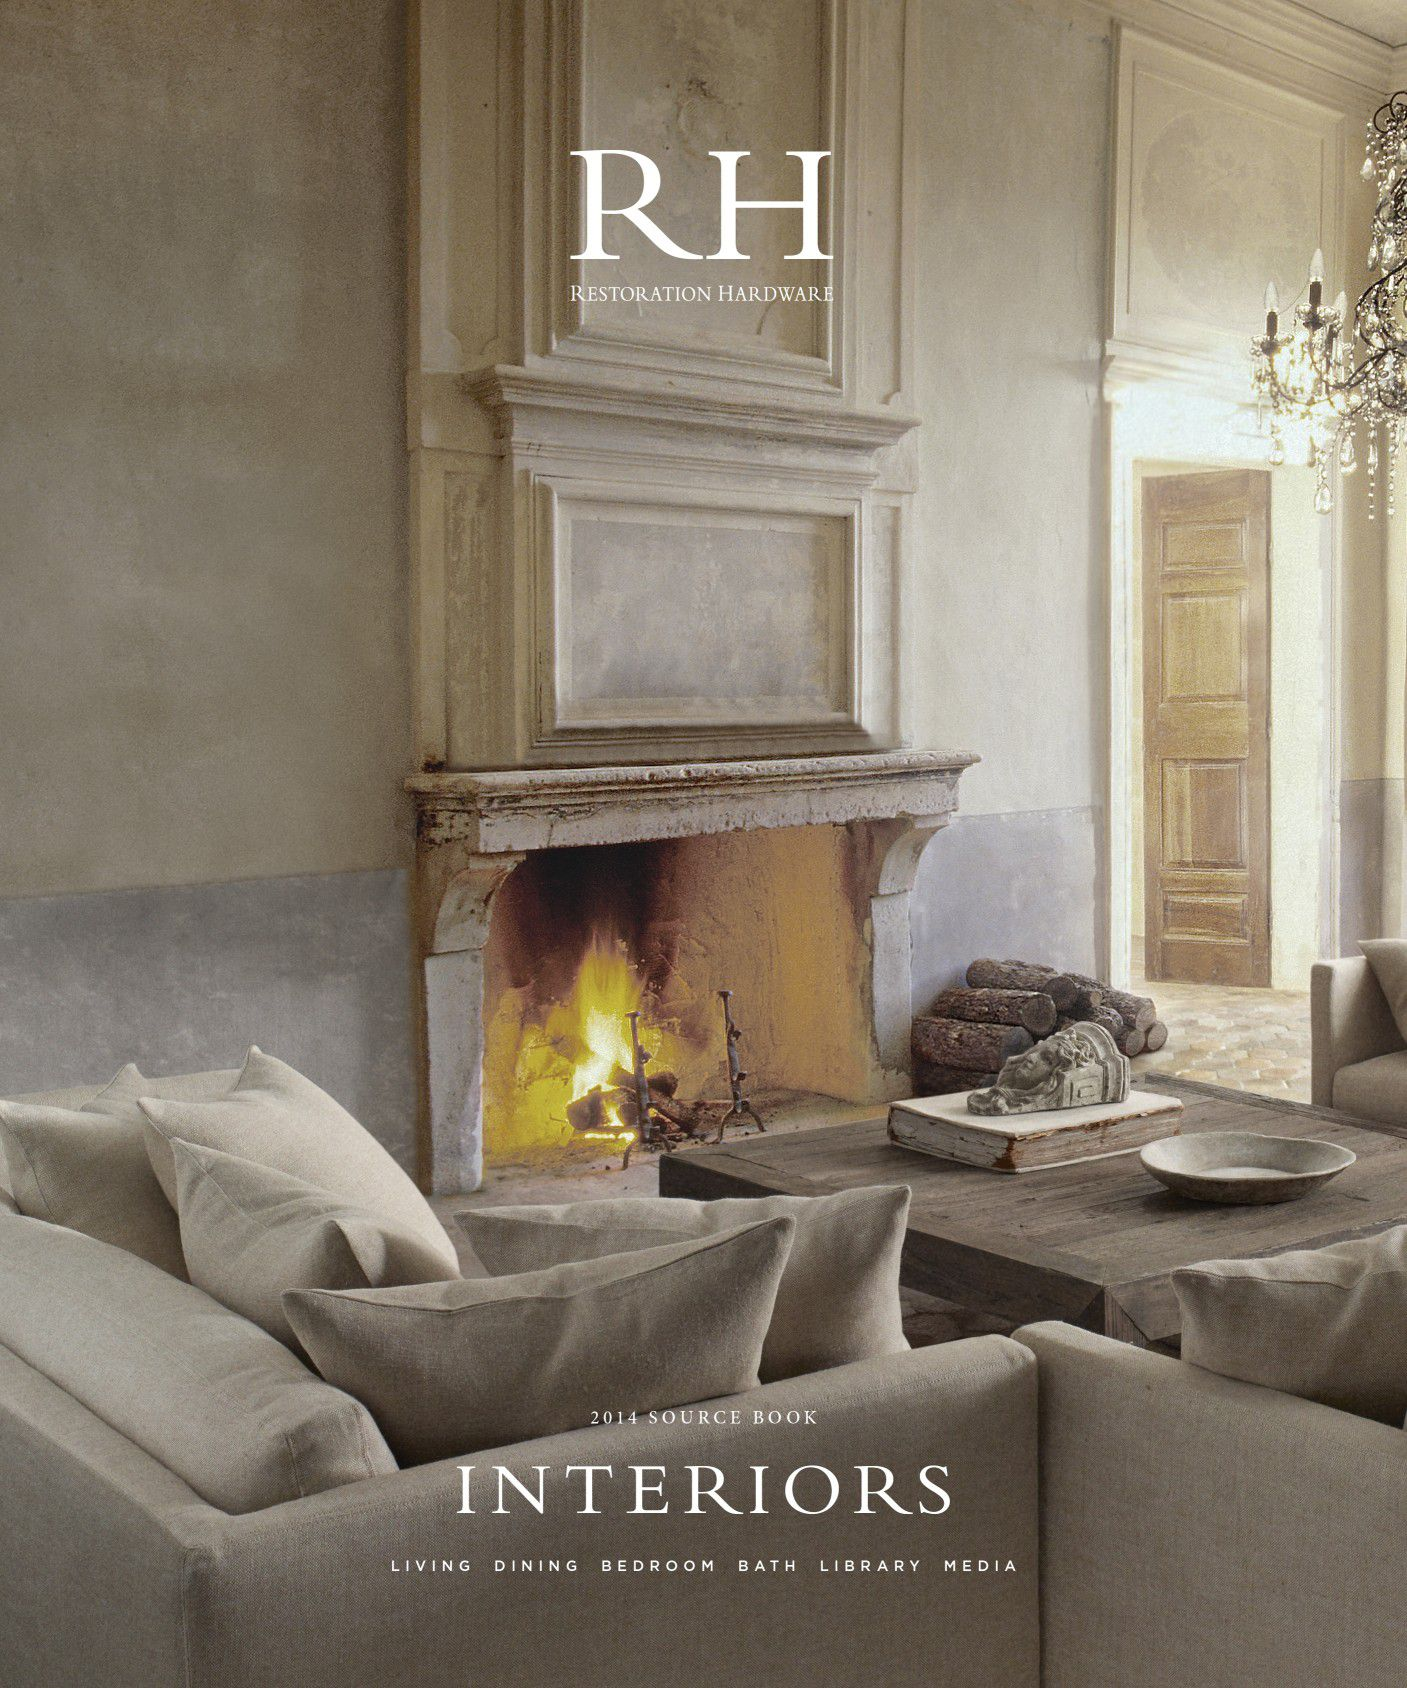 Furniture Stores Catalogs: Why Restoration Hardware Is Lavishing Millions On Luxury